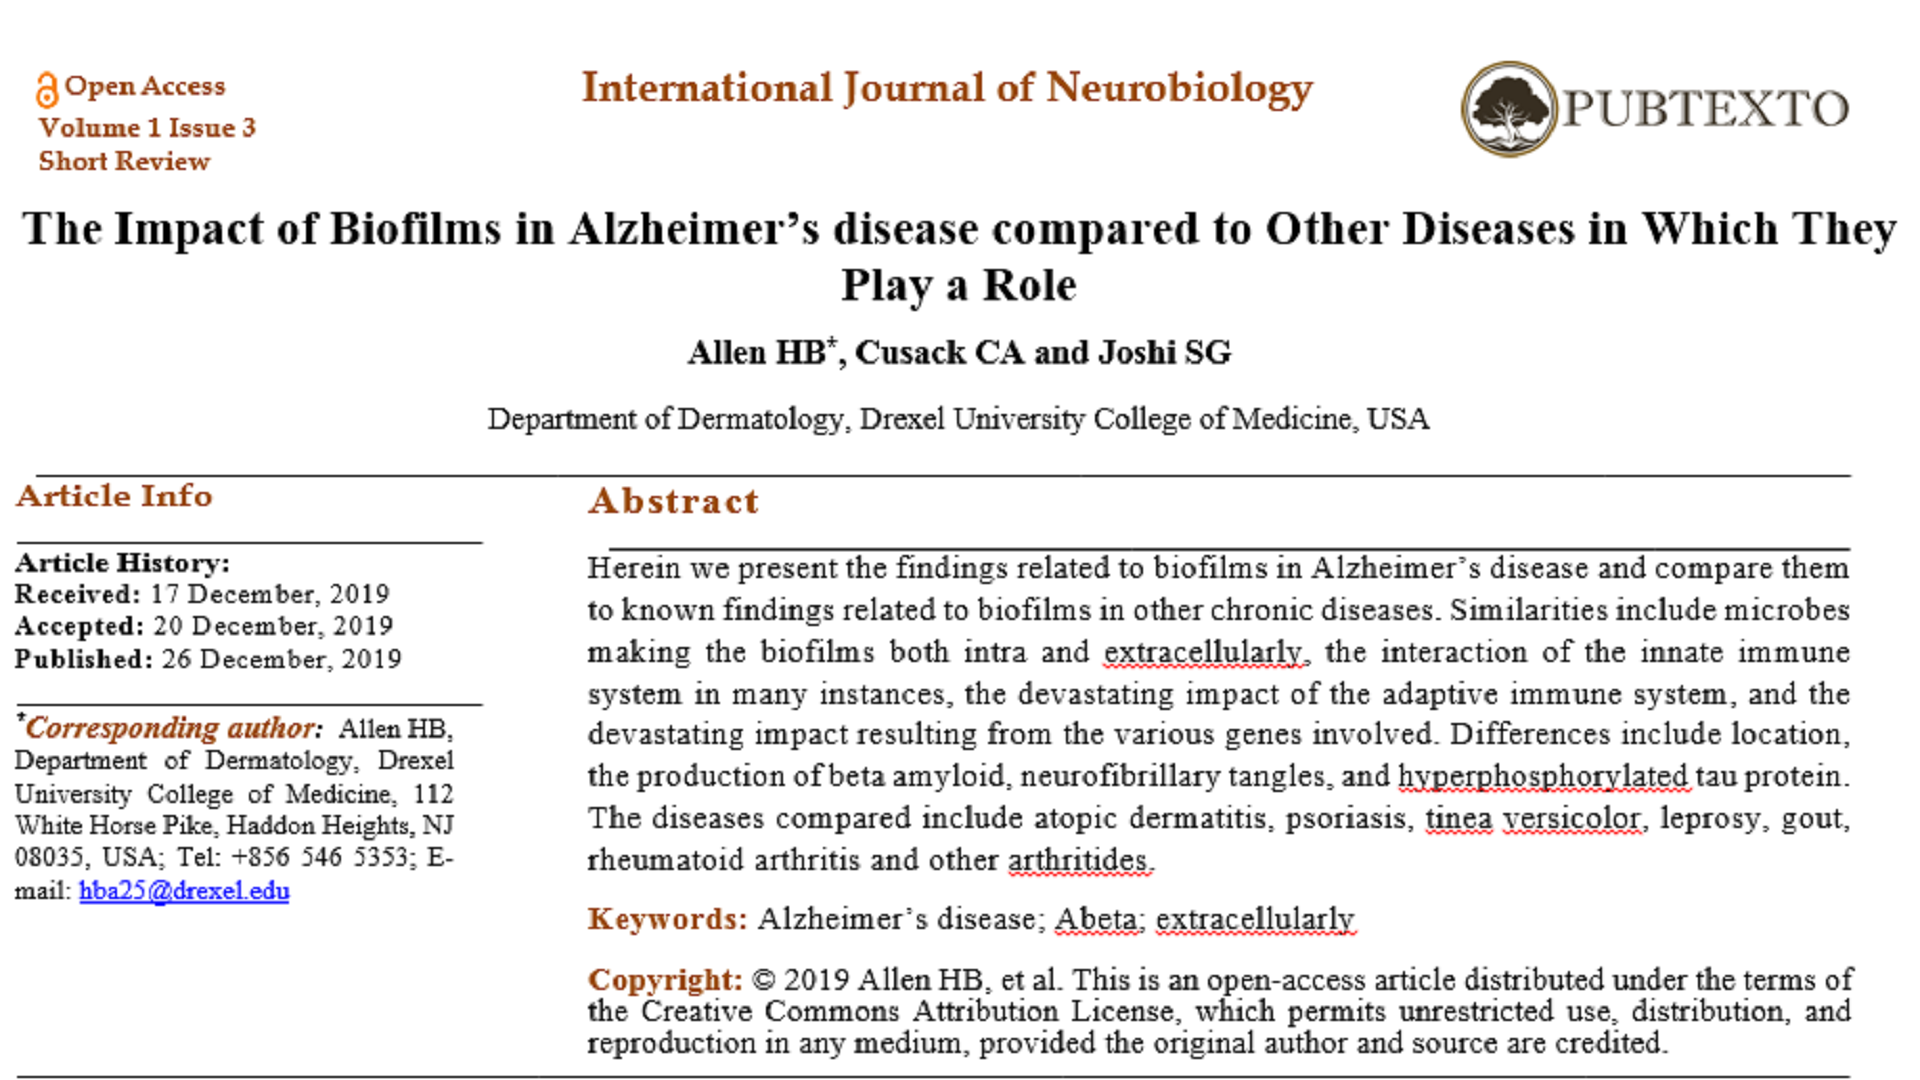 The Impact of Biofilms in Alzheimer's disease compared to Other Diseases in Which They Play a Role